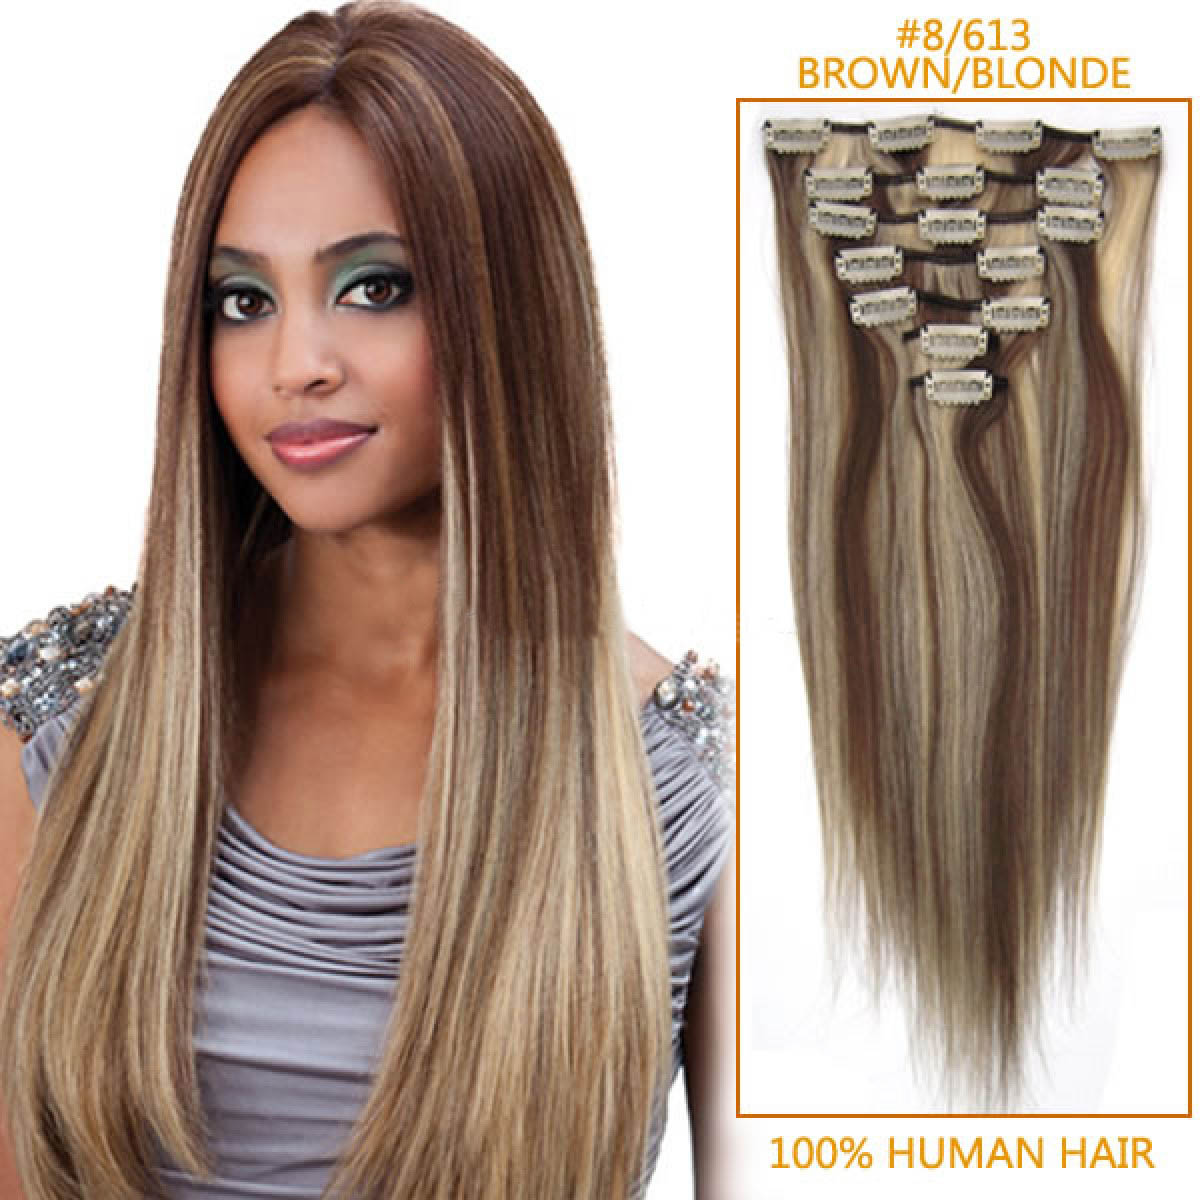 Inch 8613 brownblonde clip in human hair extensions 10pcs 22 inch 8613 brownblonde clip in human hair extensions 10pcs pmusecretfo Gallery